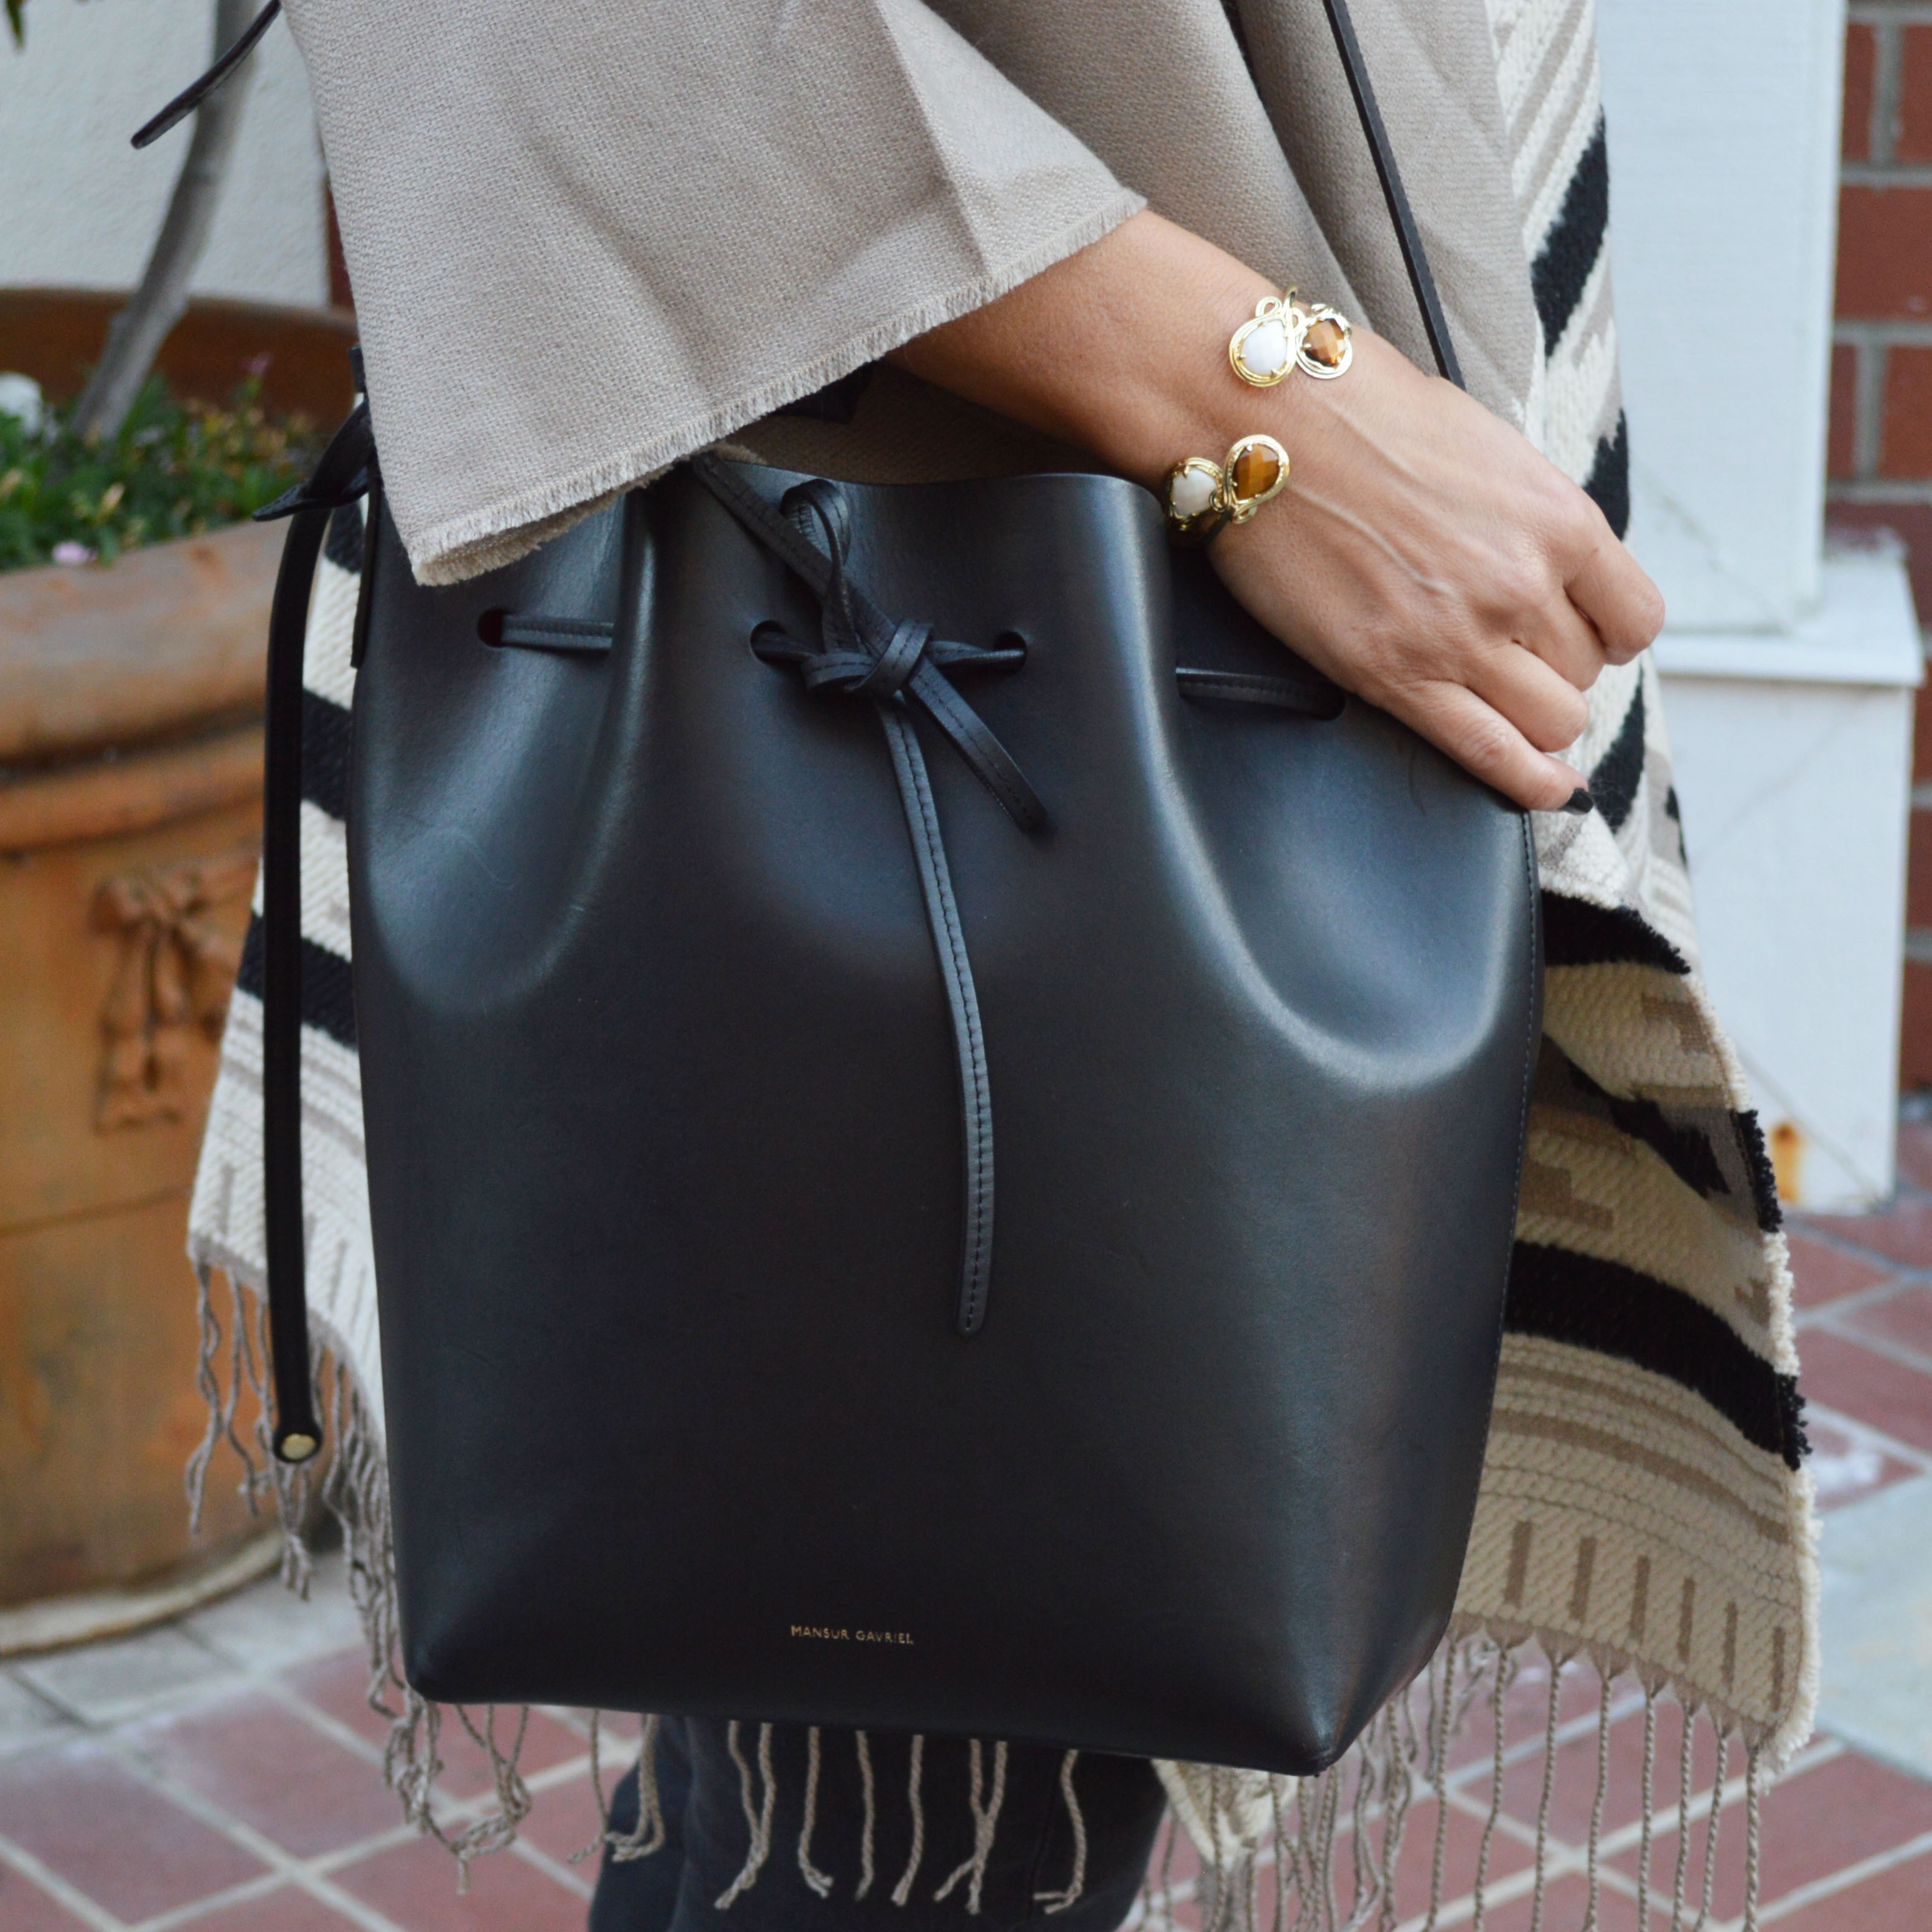 Pre-owned - Bucket Bag leather bag Mansur Gavriel 0vUWTa